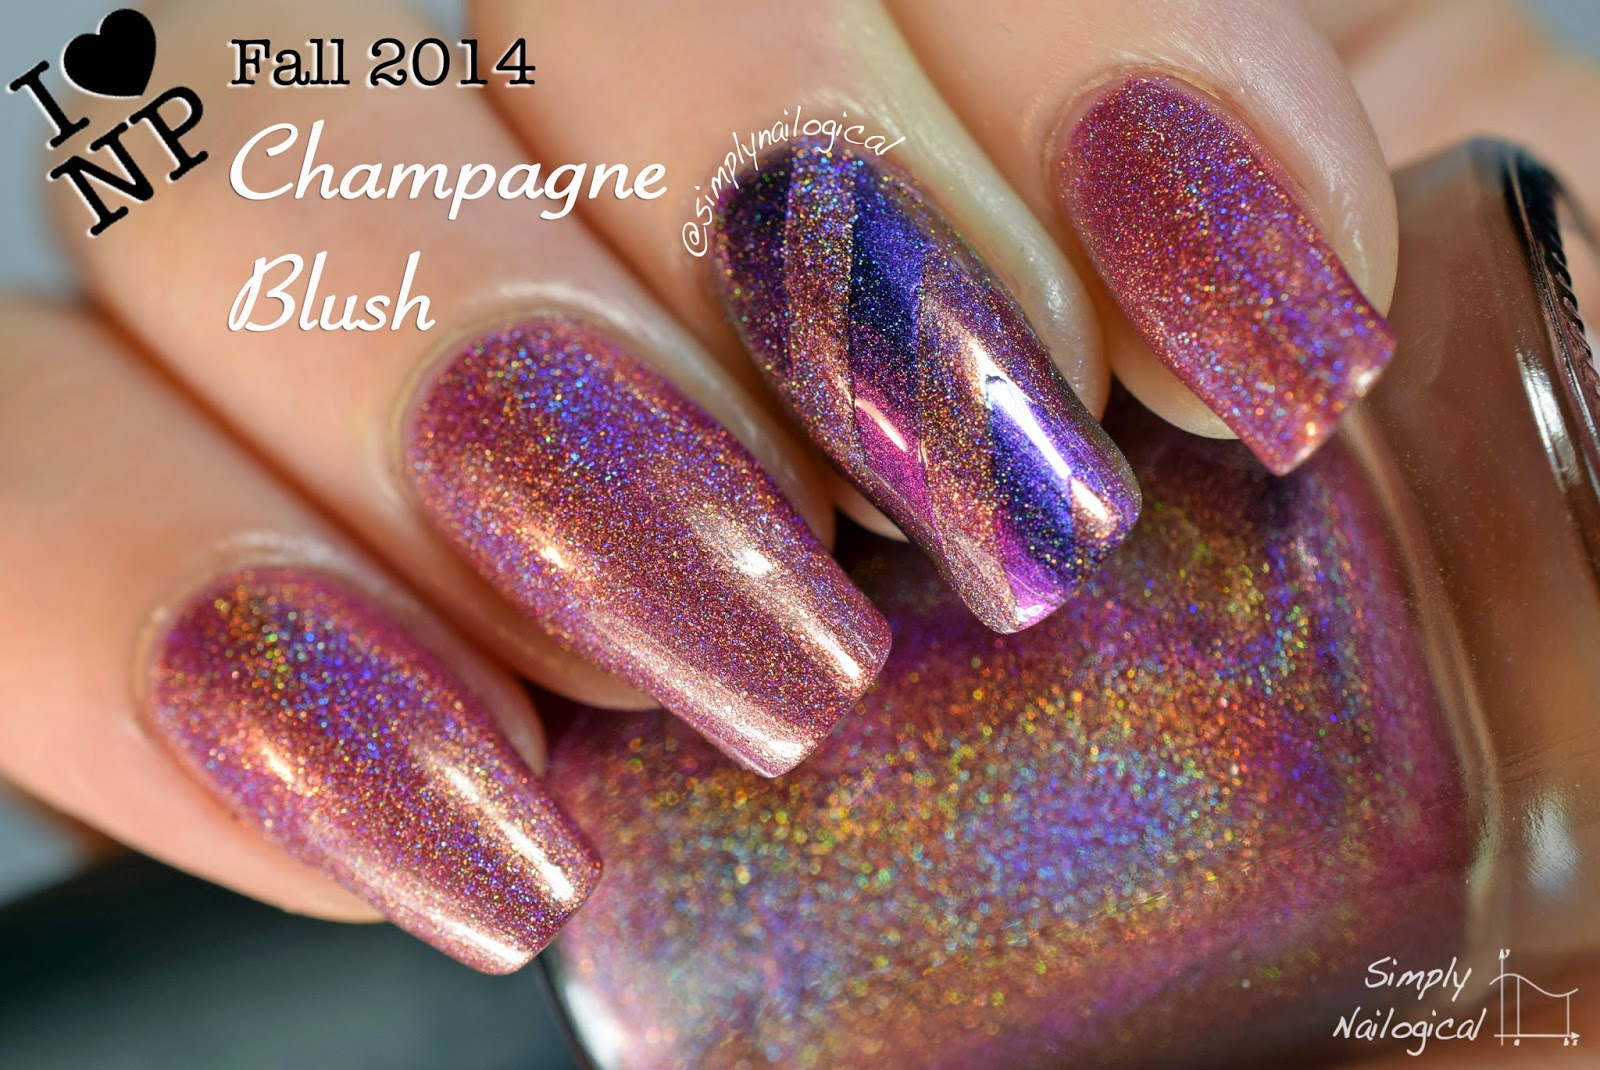 Champagne Blush - ILNP Fall 2014 collection swatch